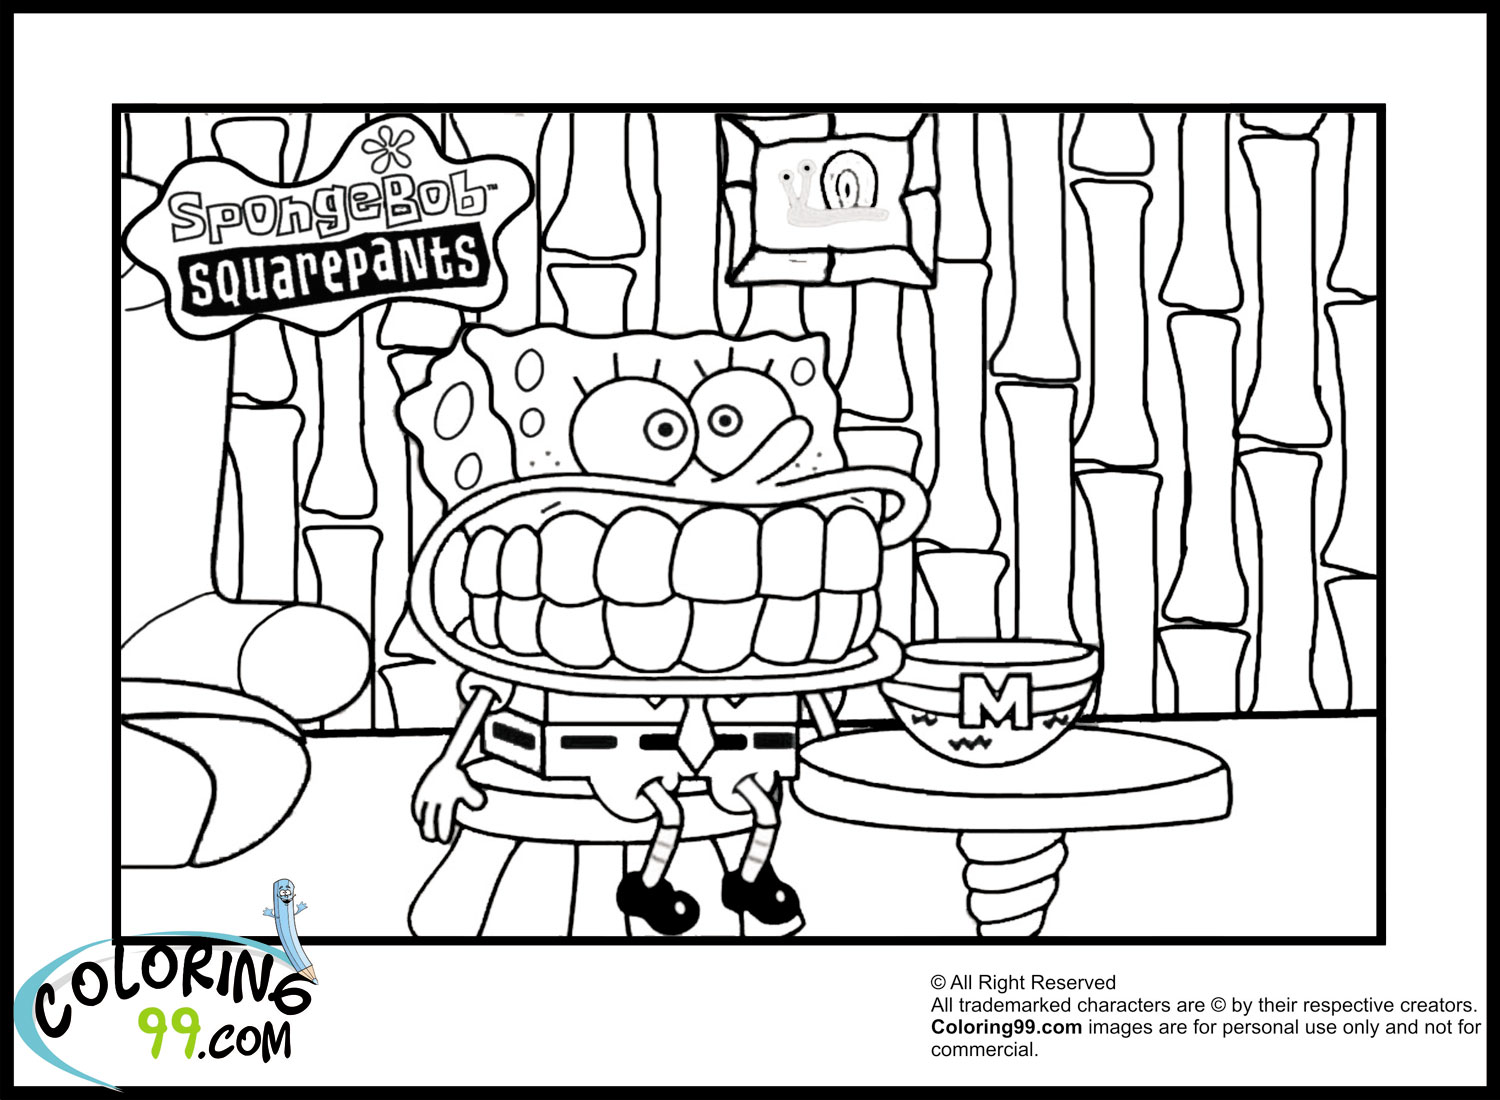 Funny Spongebob Coloring Pages To Print